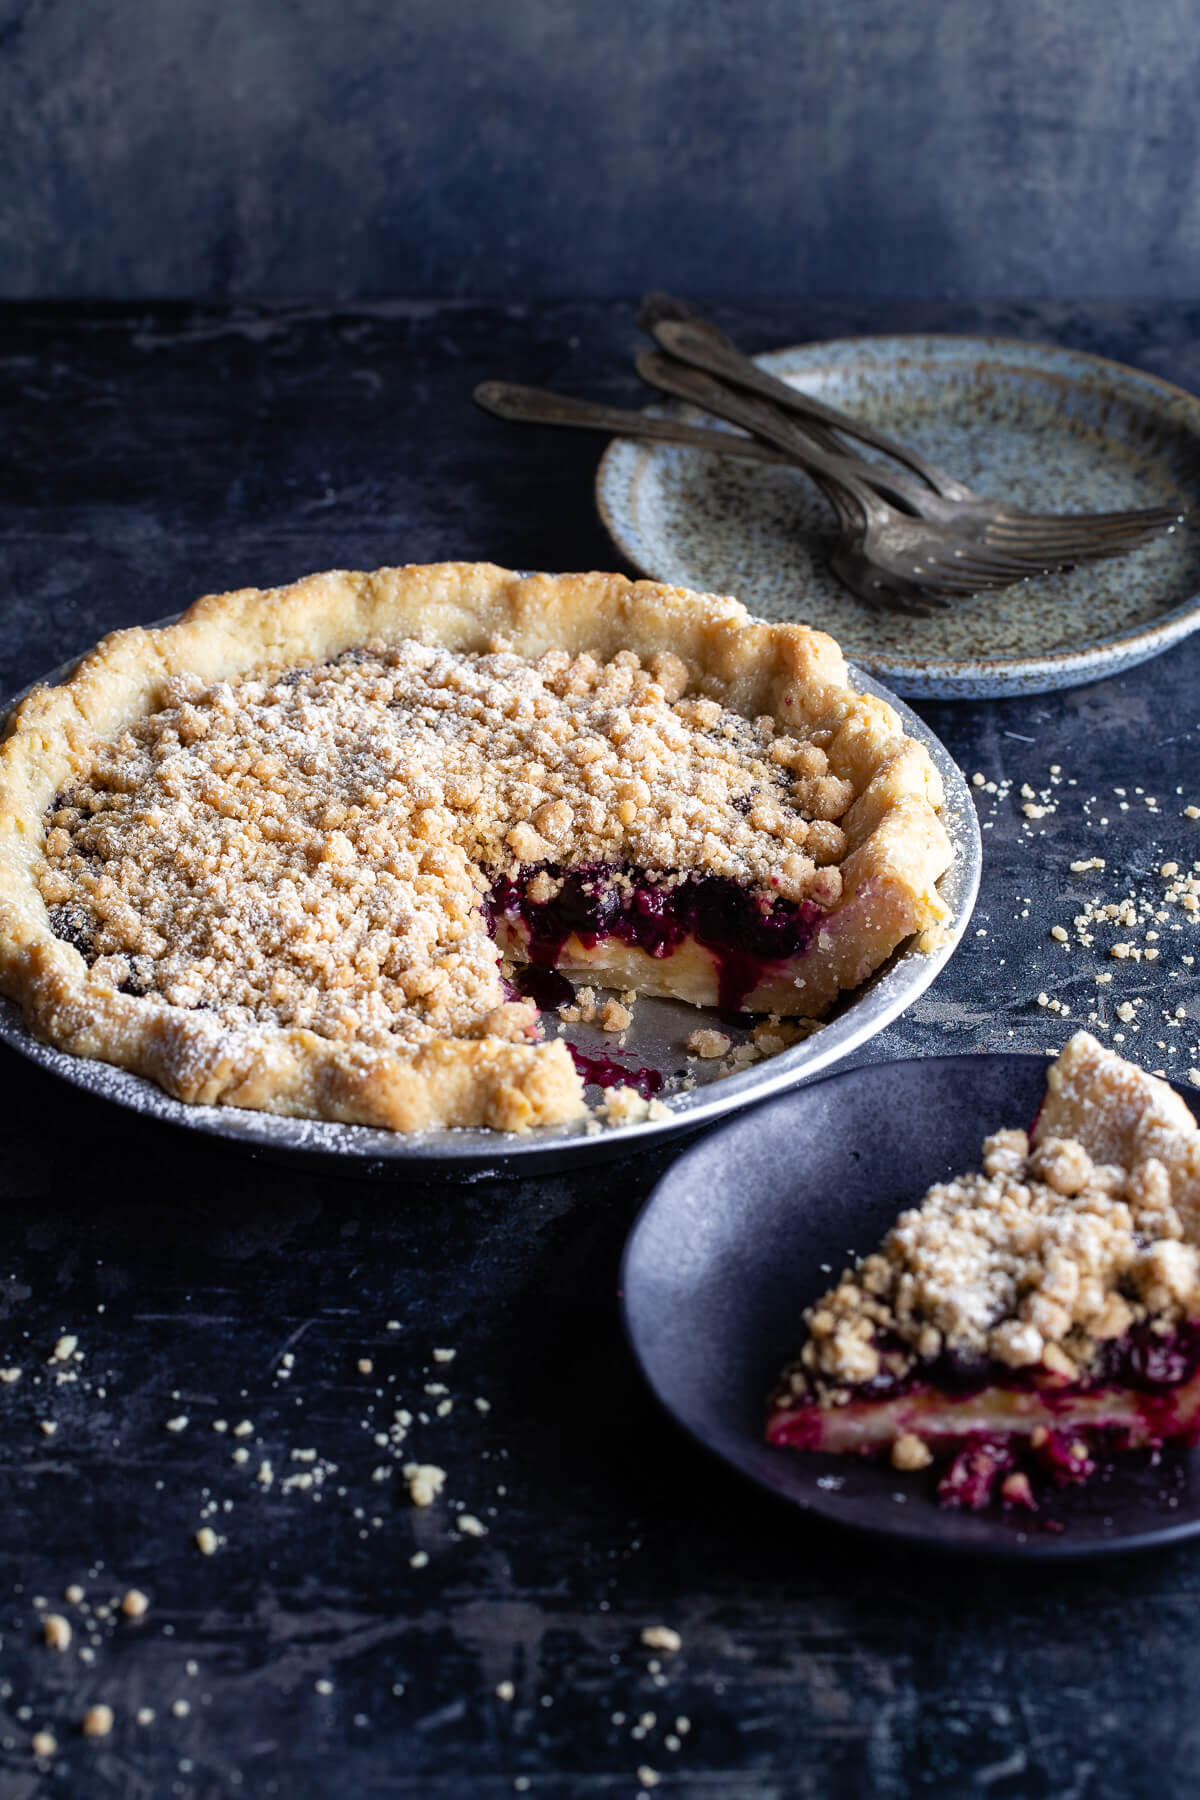 A lemon-blueberry streusel pie with a slice taken out next to a slice of pie on a plate.